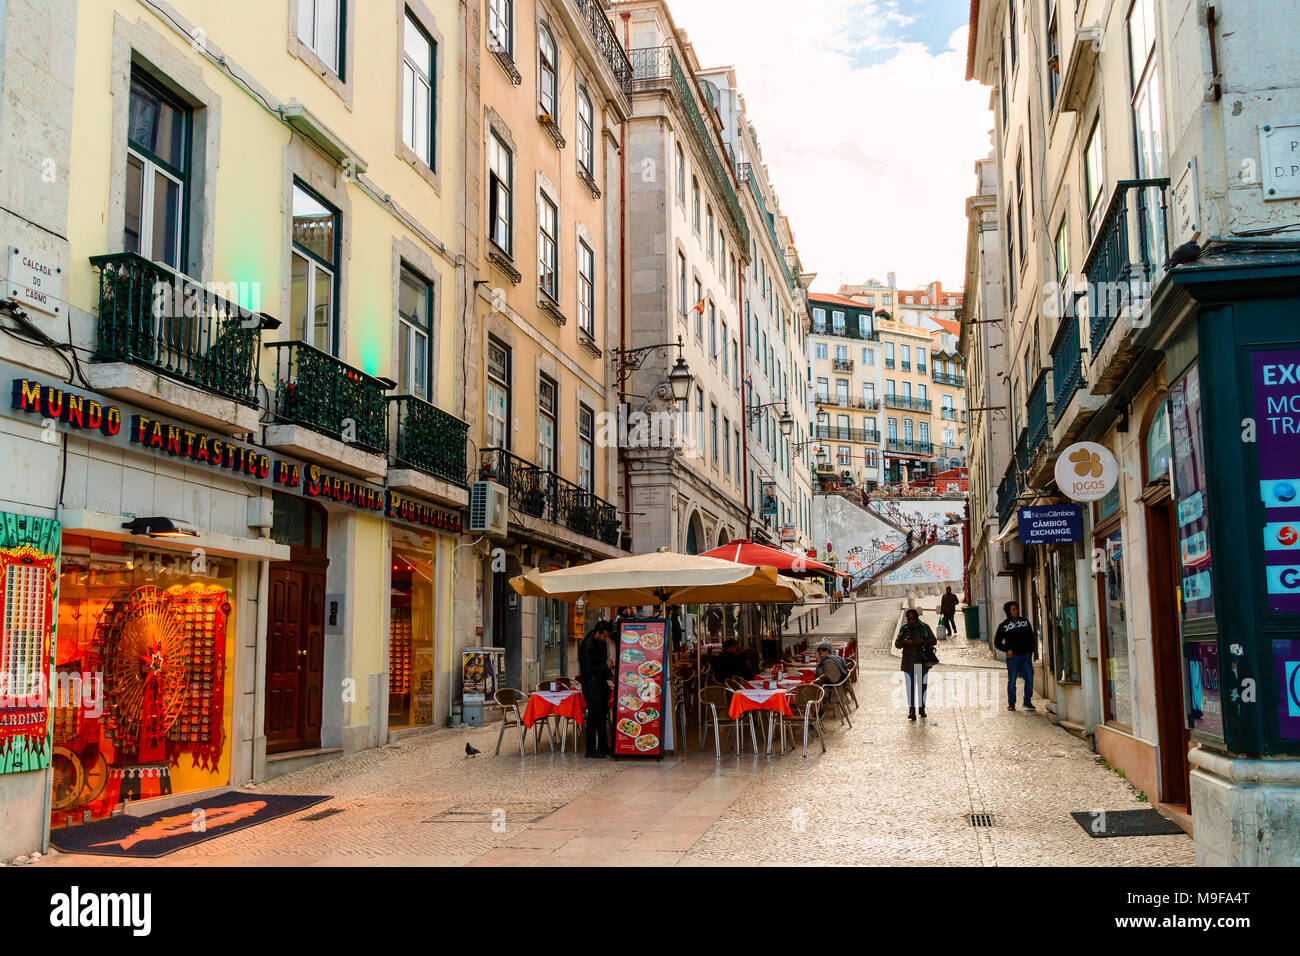 Street view in the old city centre of Lisbon. - Stock Image